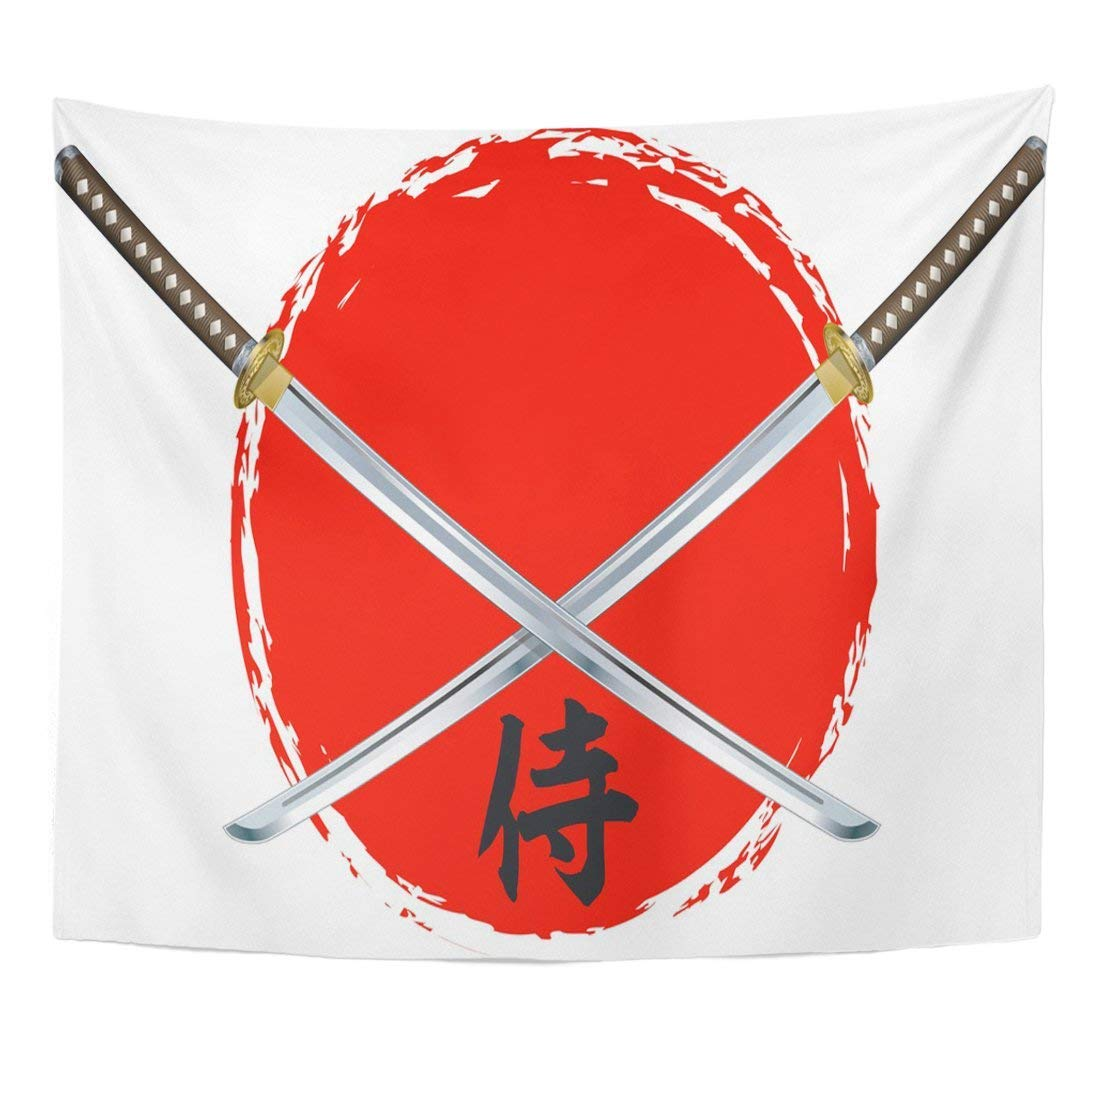 Tapestry Katana Samurai Swords and Text Japan Japanese Home Decor Wall Hanging for Living Room Bedroom Dorm 50x60 inches